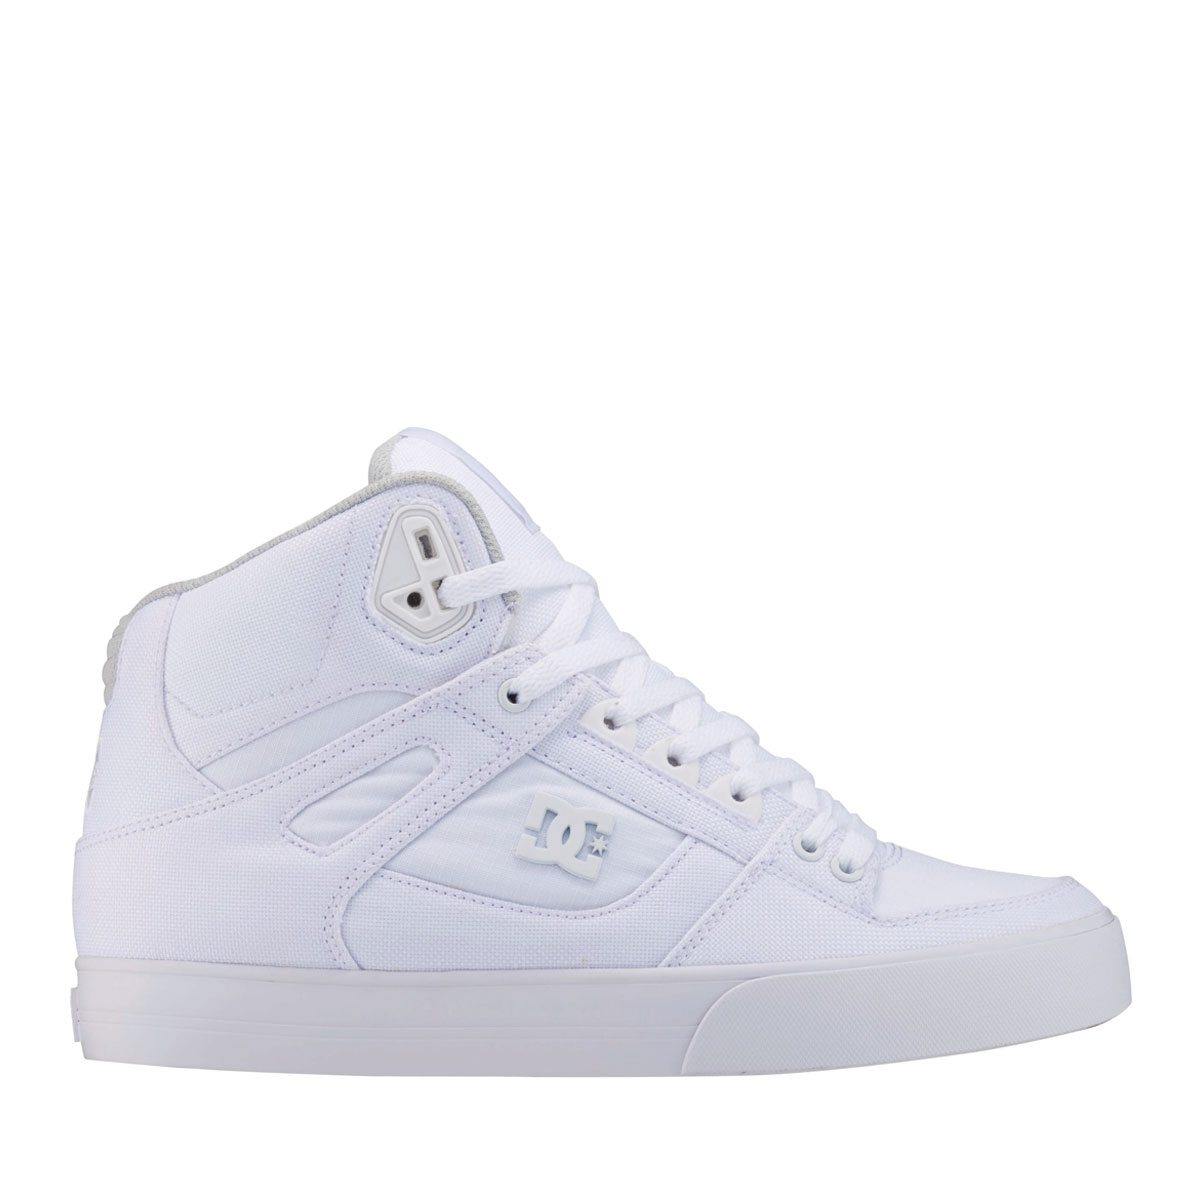 DC SHOES PURE HIGH-TOP WC TX LE(ディーシー シューズ ピュア ハイトップ WC TX LE)WHITE/WHITE【メンズ スニーカー】18SP-I